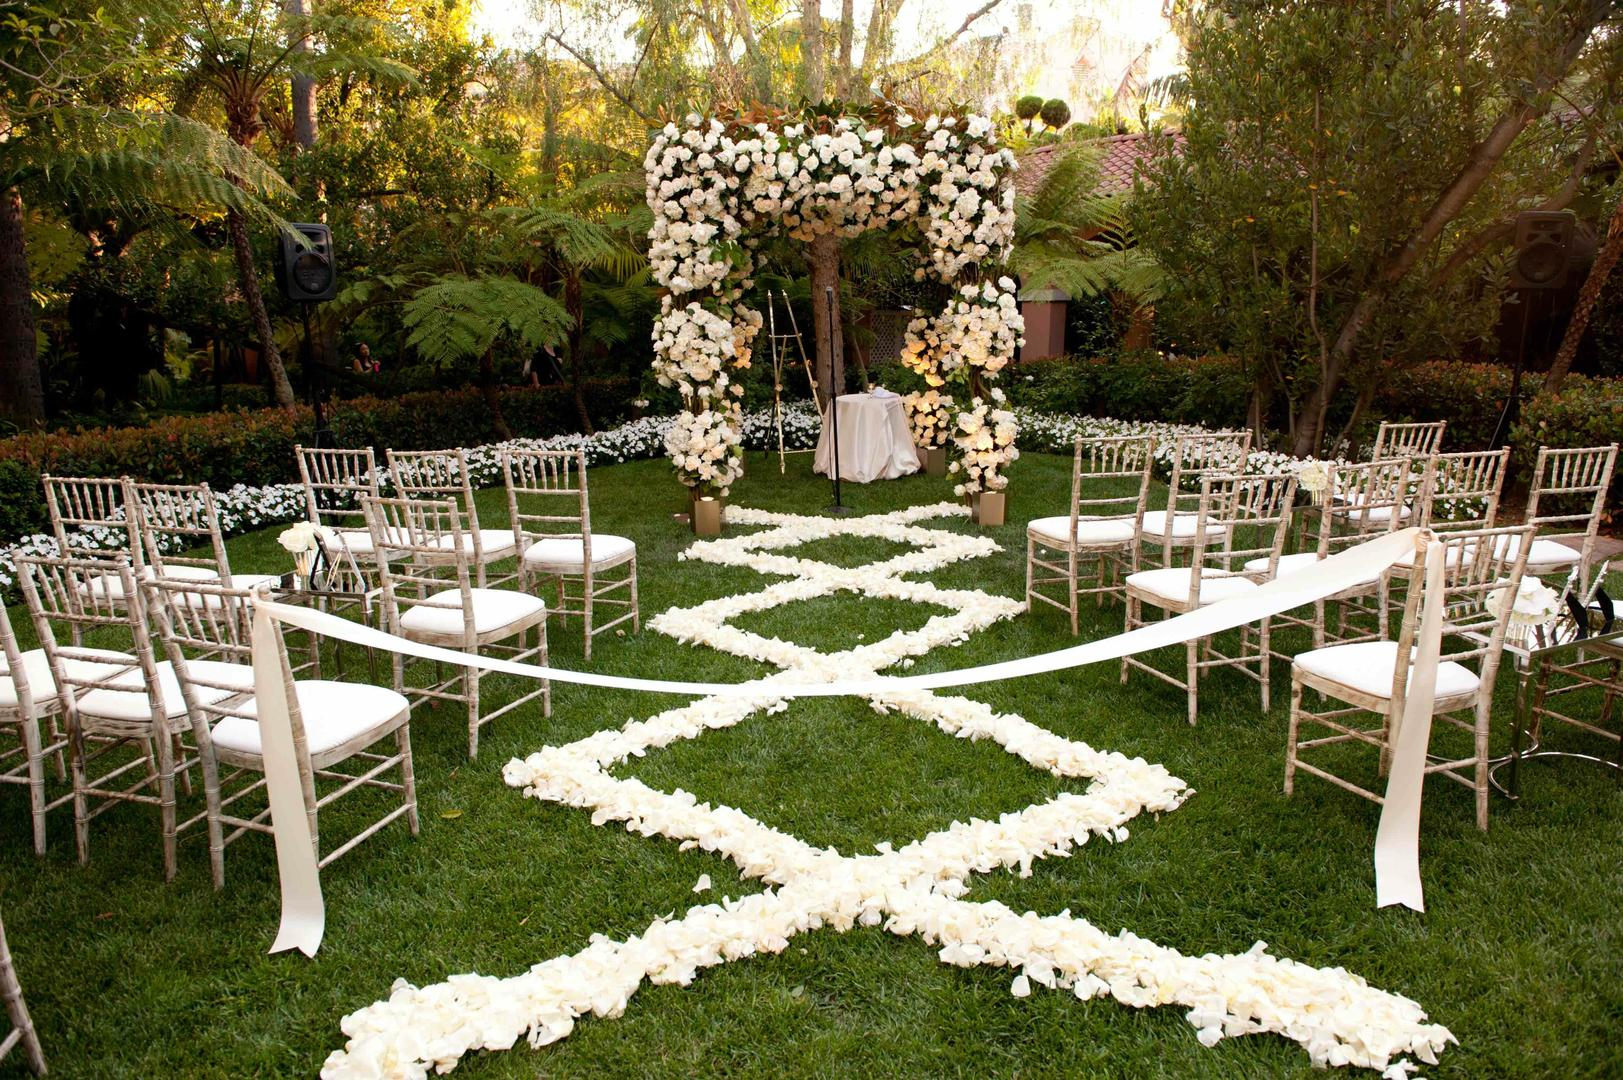 Flower petal designs for the wedding ceremony aisle for Wedding walkway